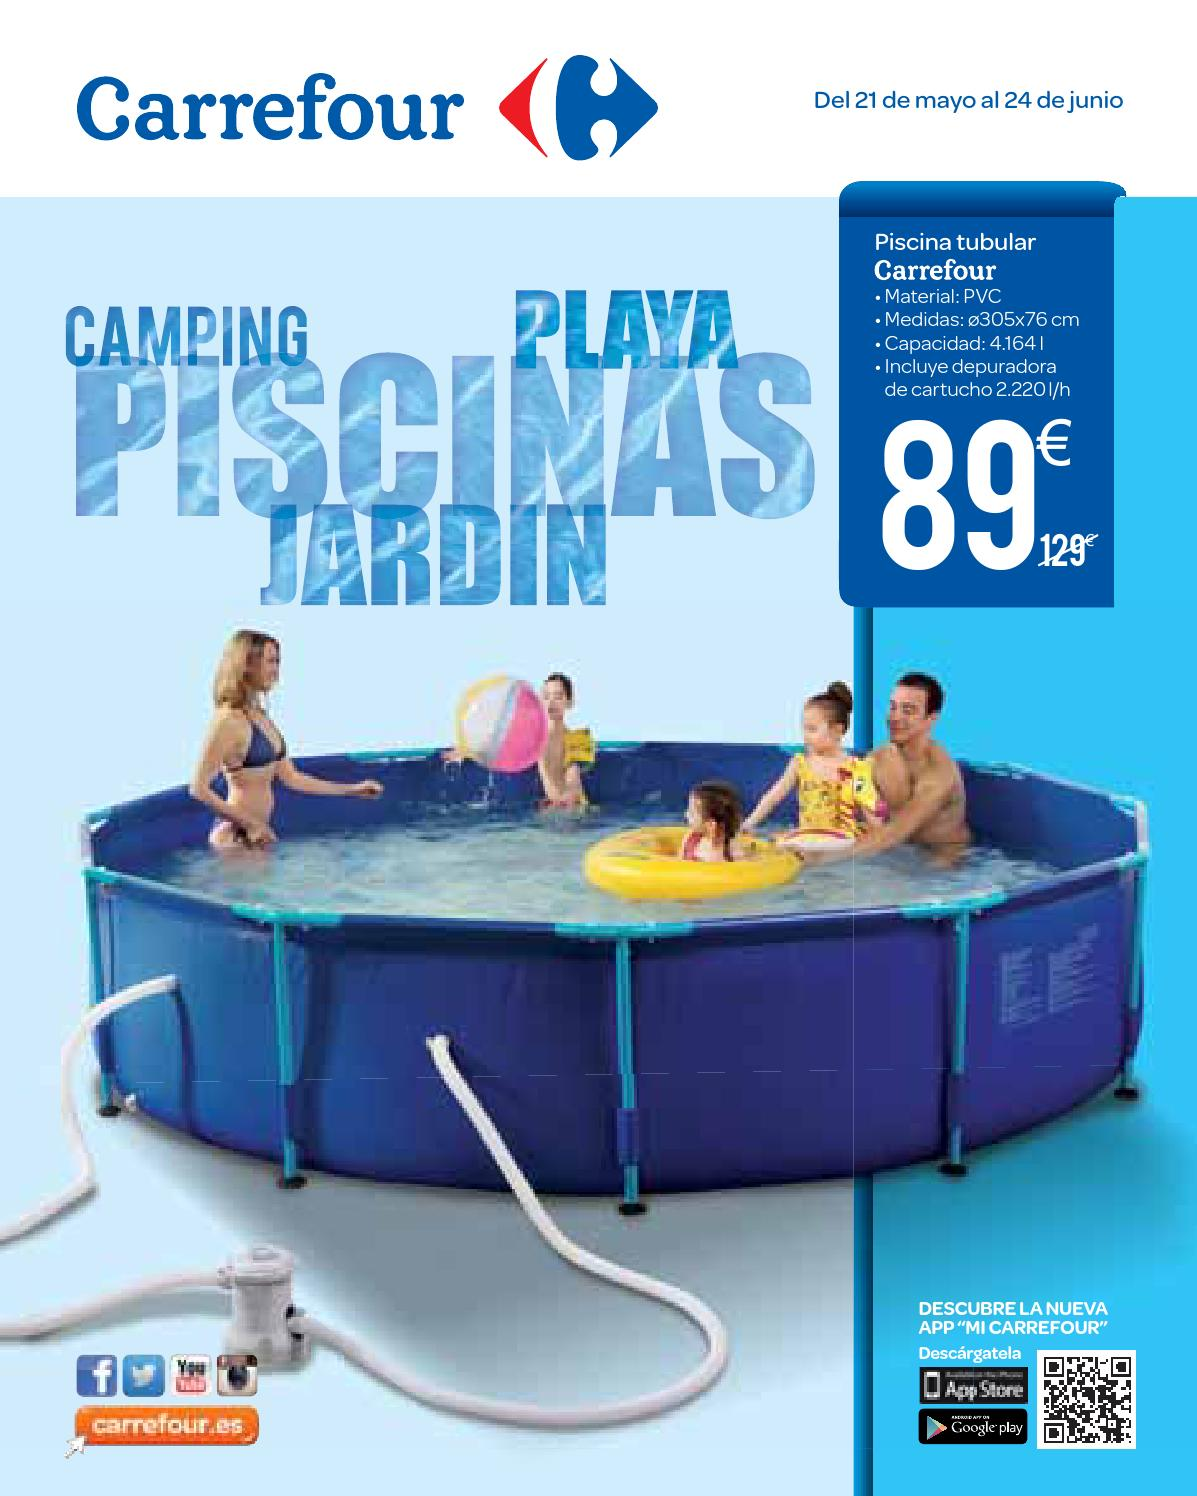 Piscinas y jardin by losdescuentos issuu for Carrefour piscina hinchable